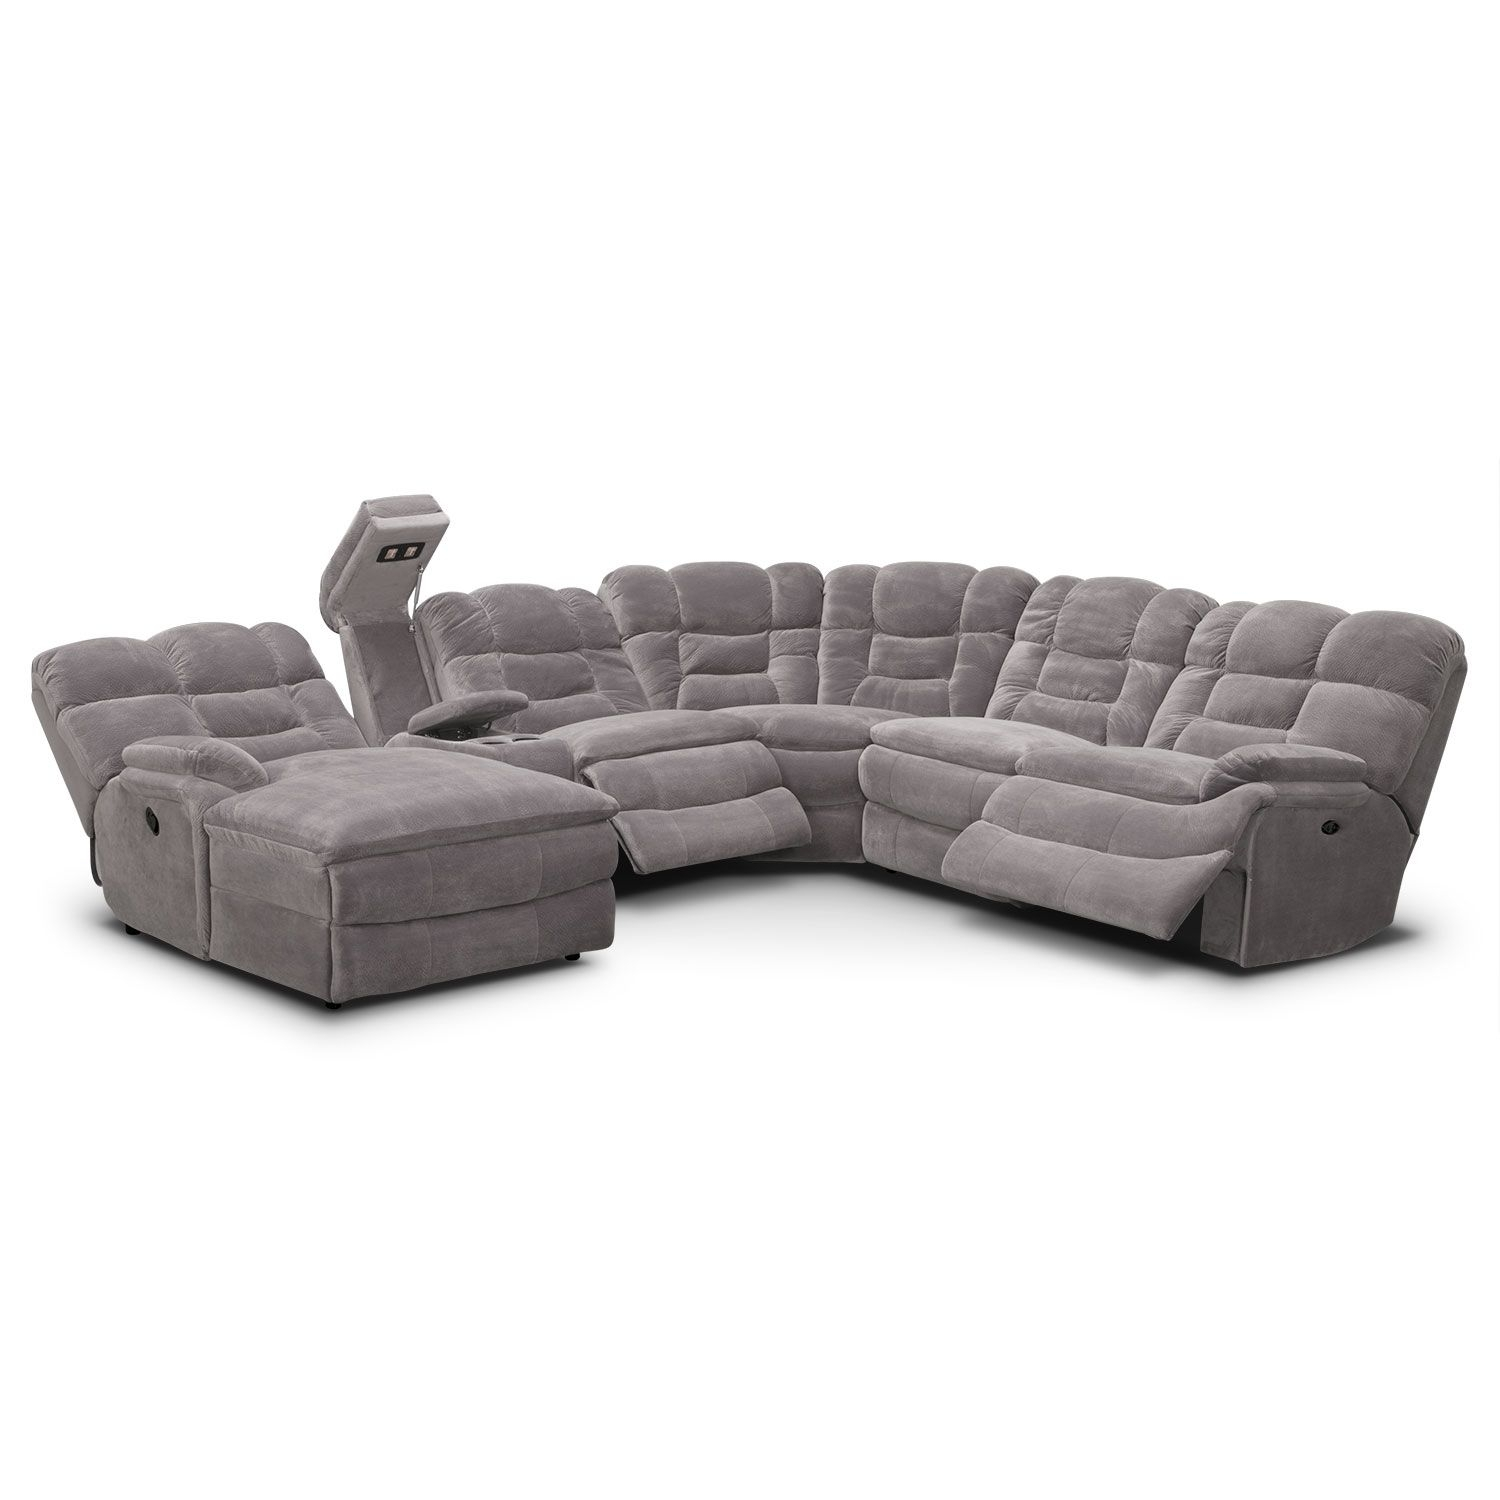 Big Softie 6 Piece Power Reclining Sectional With Left Facing Chaise Regarding Marcus Grey 6 Piece Sectionals With  Power Headrest & Usb (Image 9 of 25)